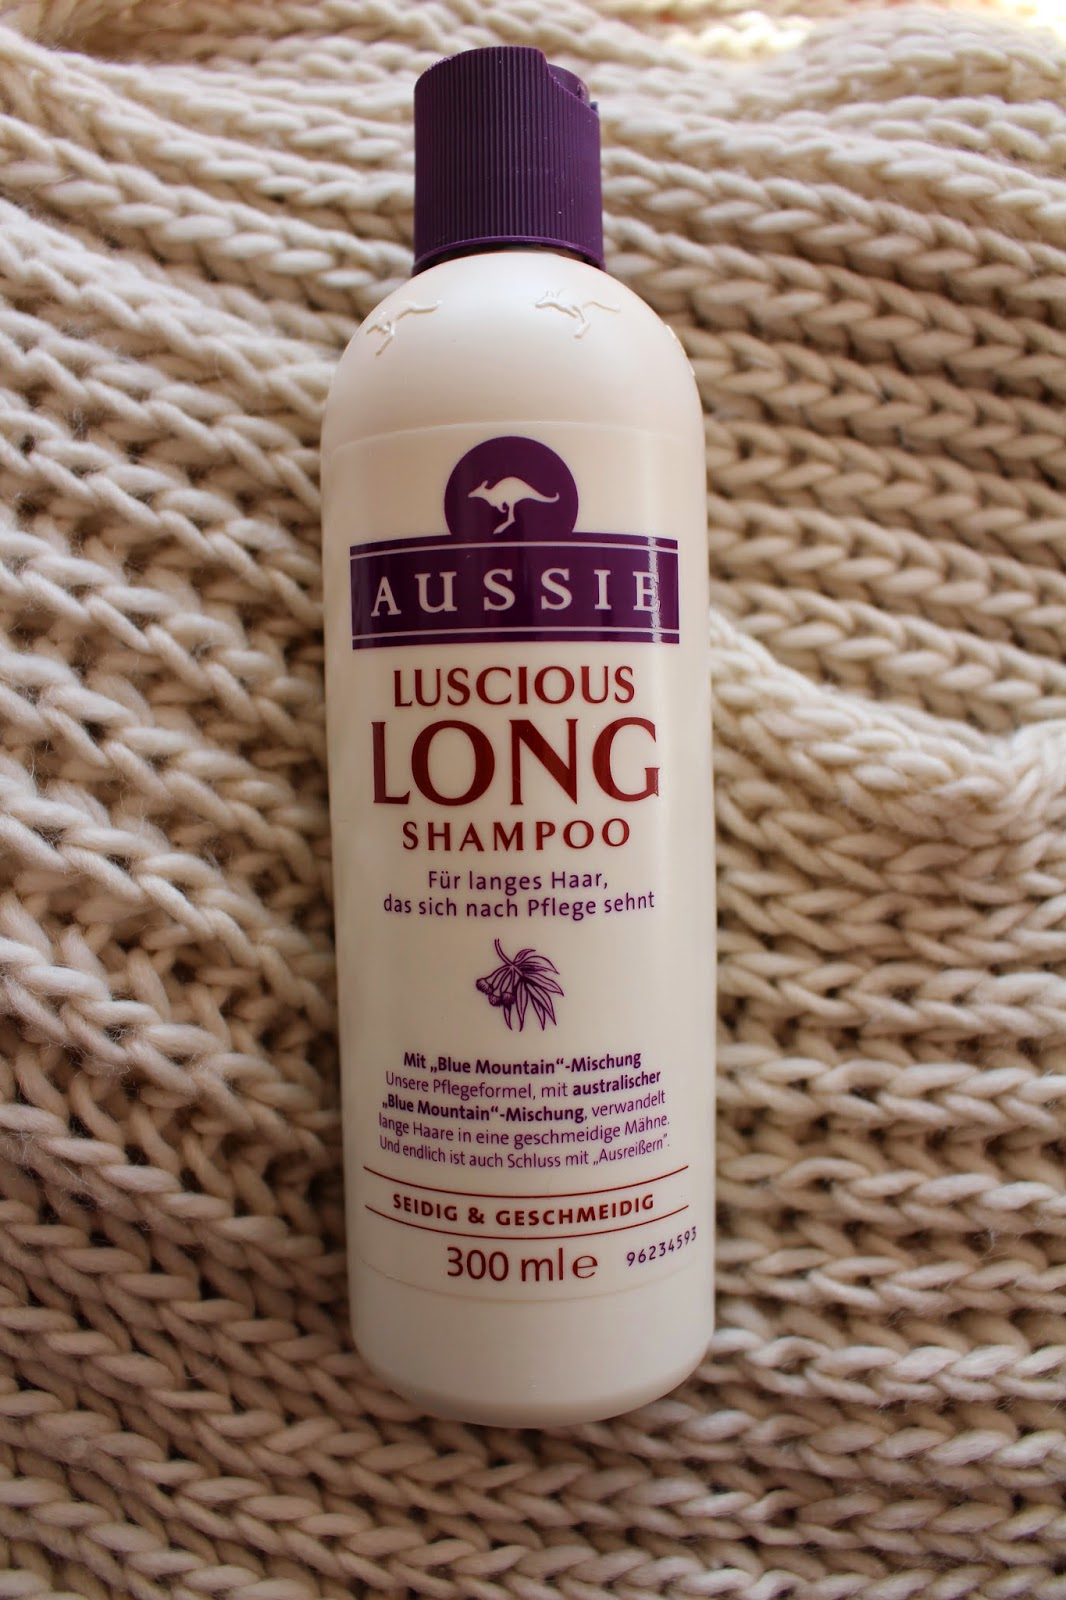 NiNi's Welt: [REVIEW Produkttest] Aussie Luscious Long Shampoo